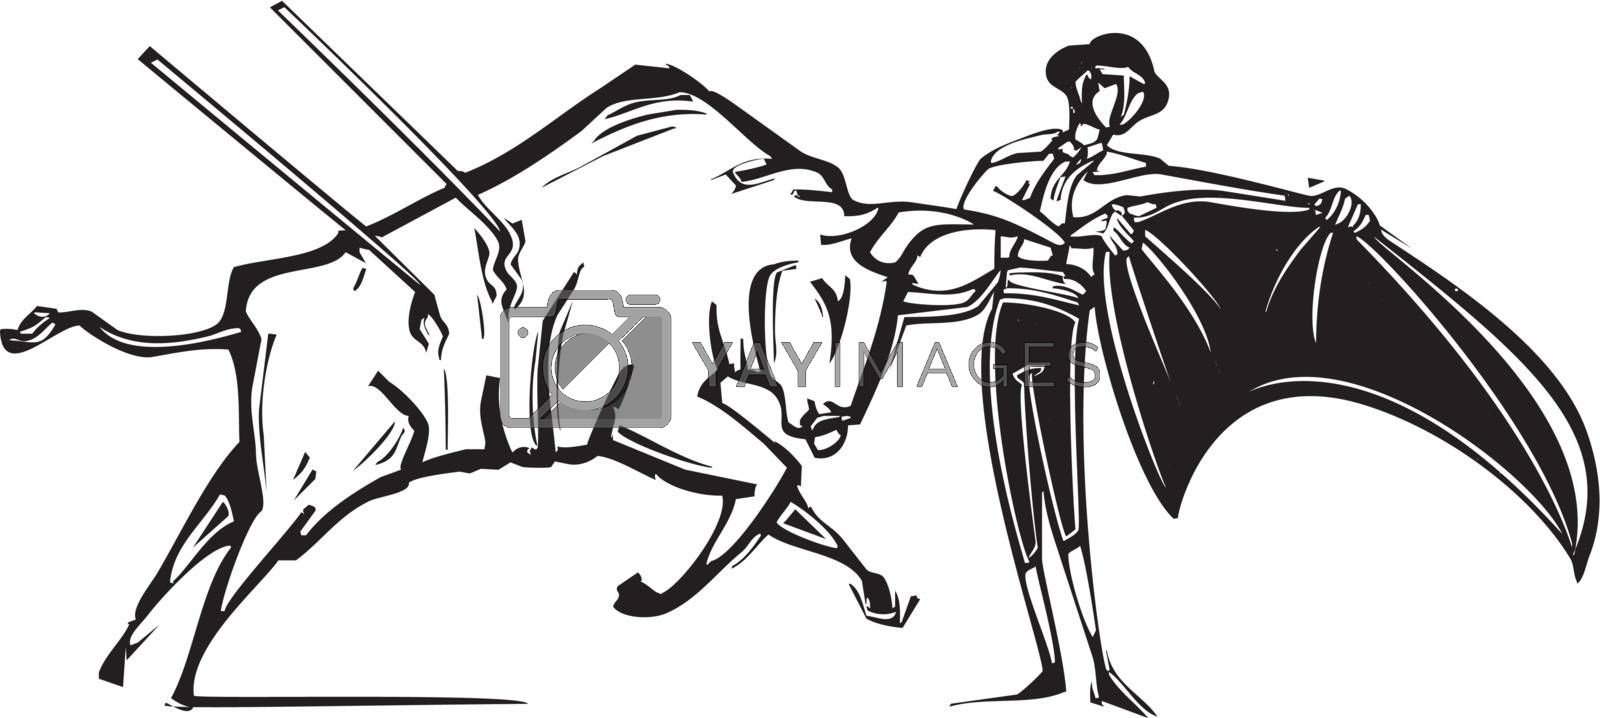 Woodcut style image of a matador and a wounded bull in a bullfight